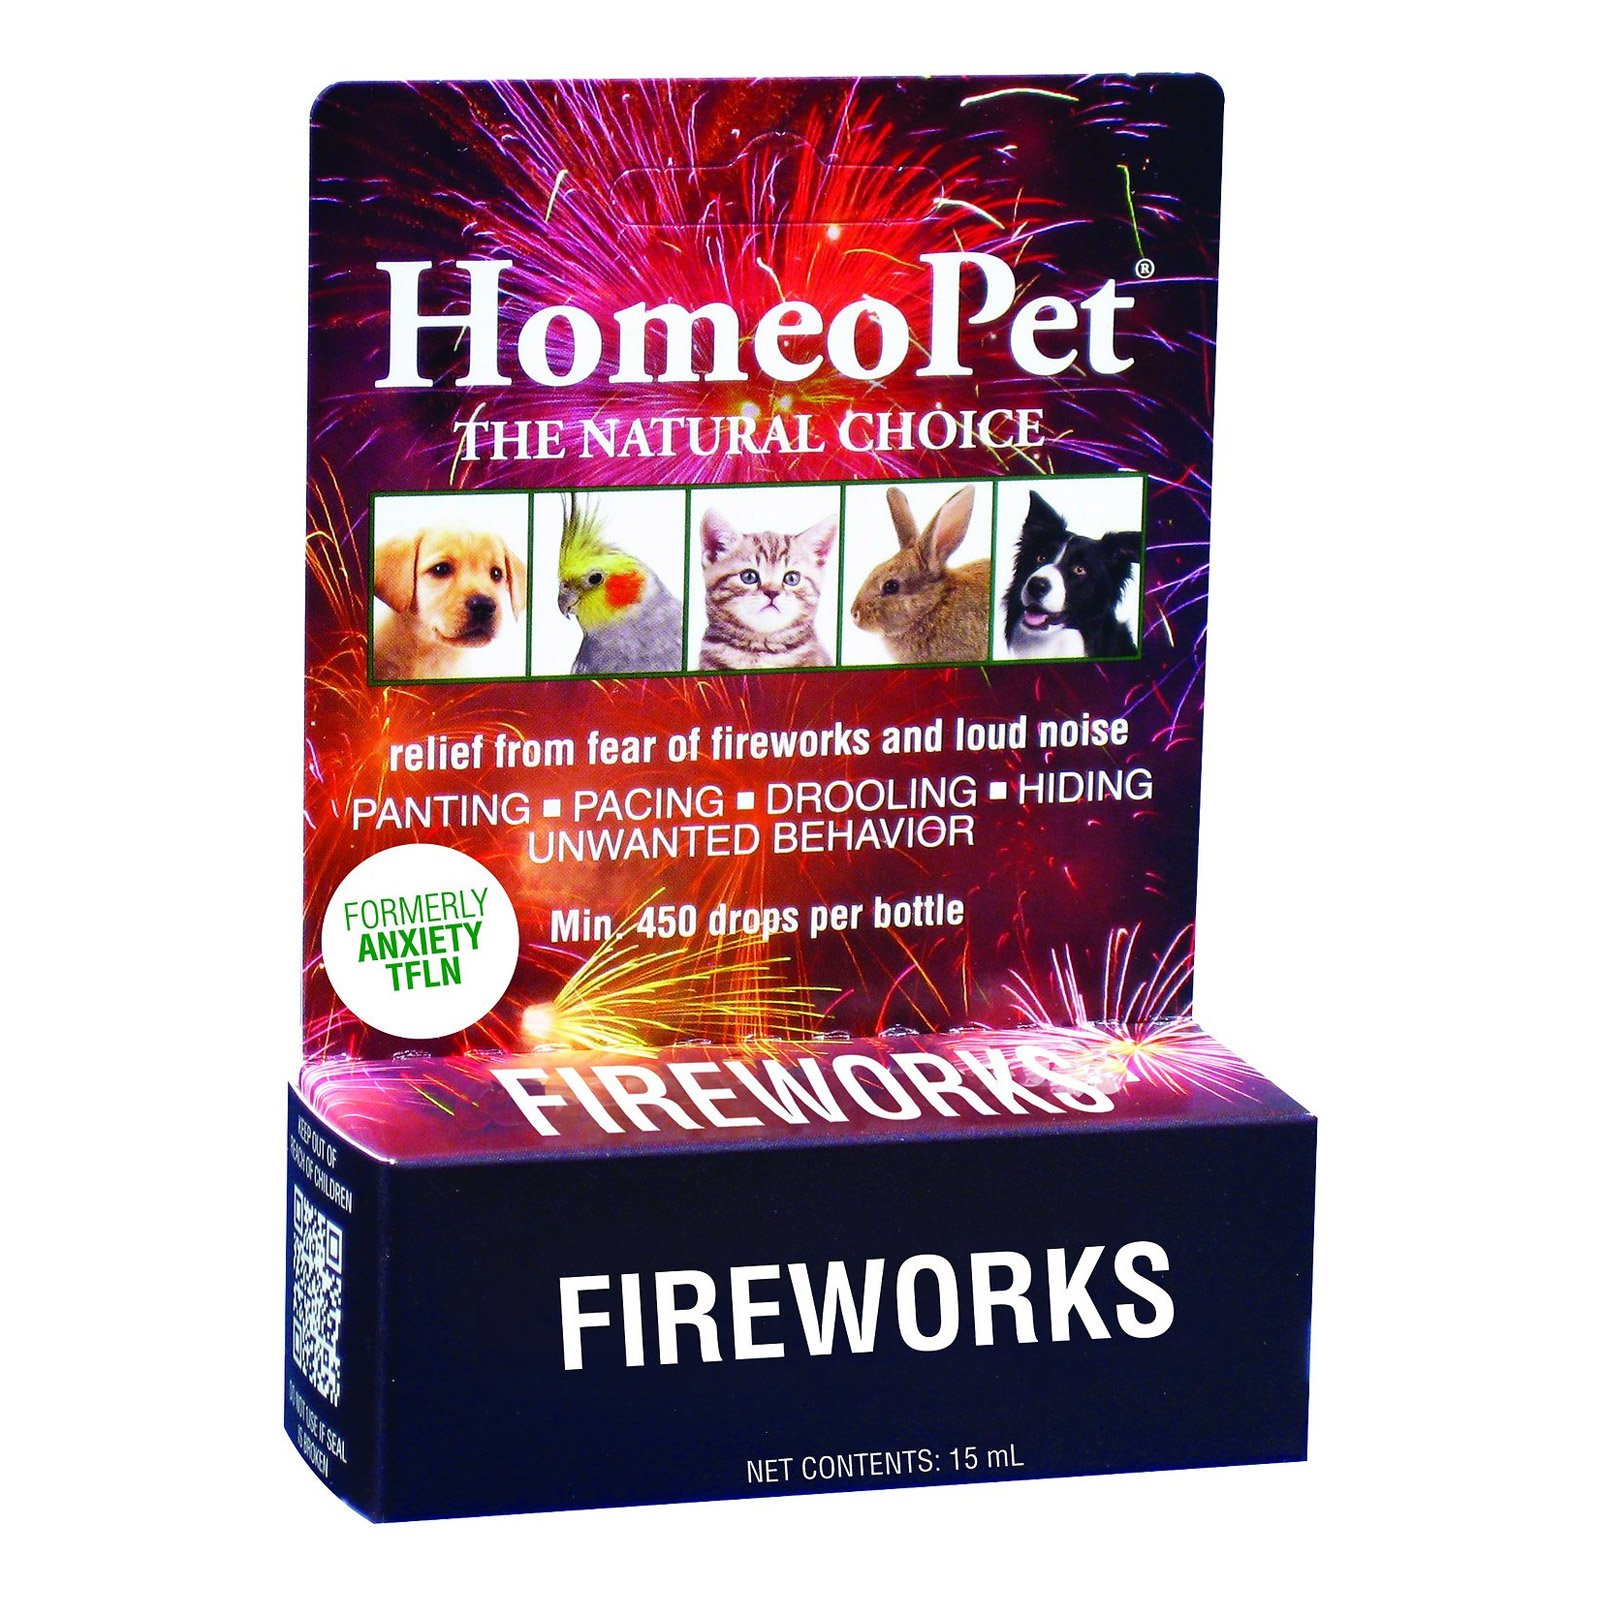 Anxiety TFLN for Dogs and Cats